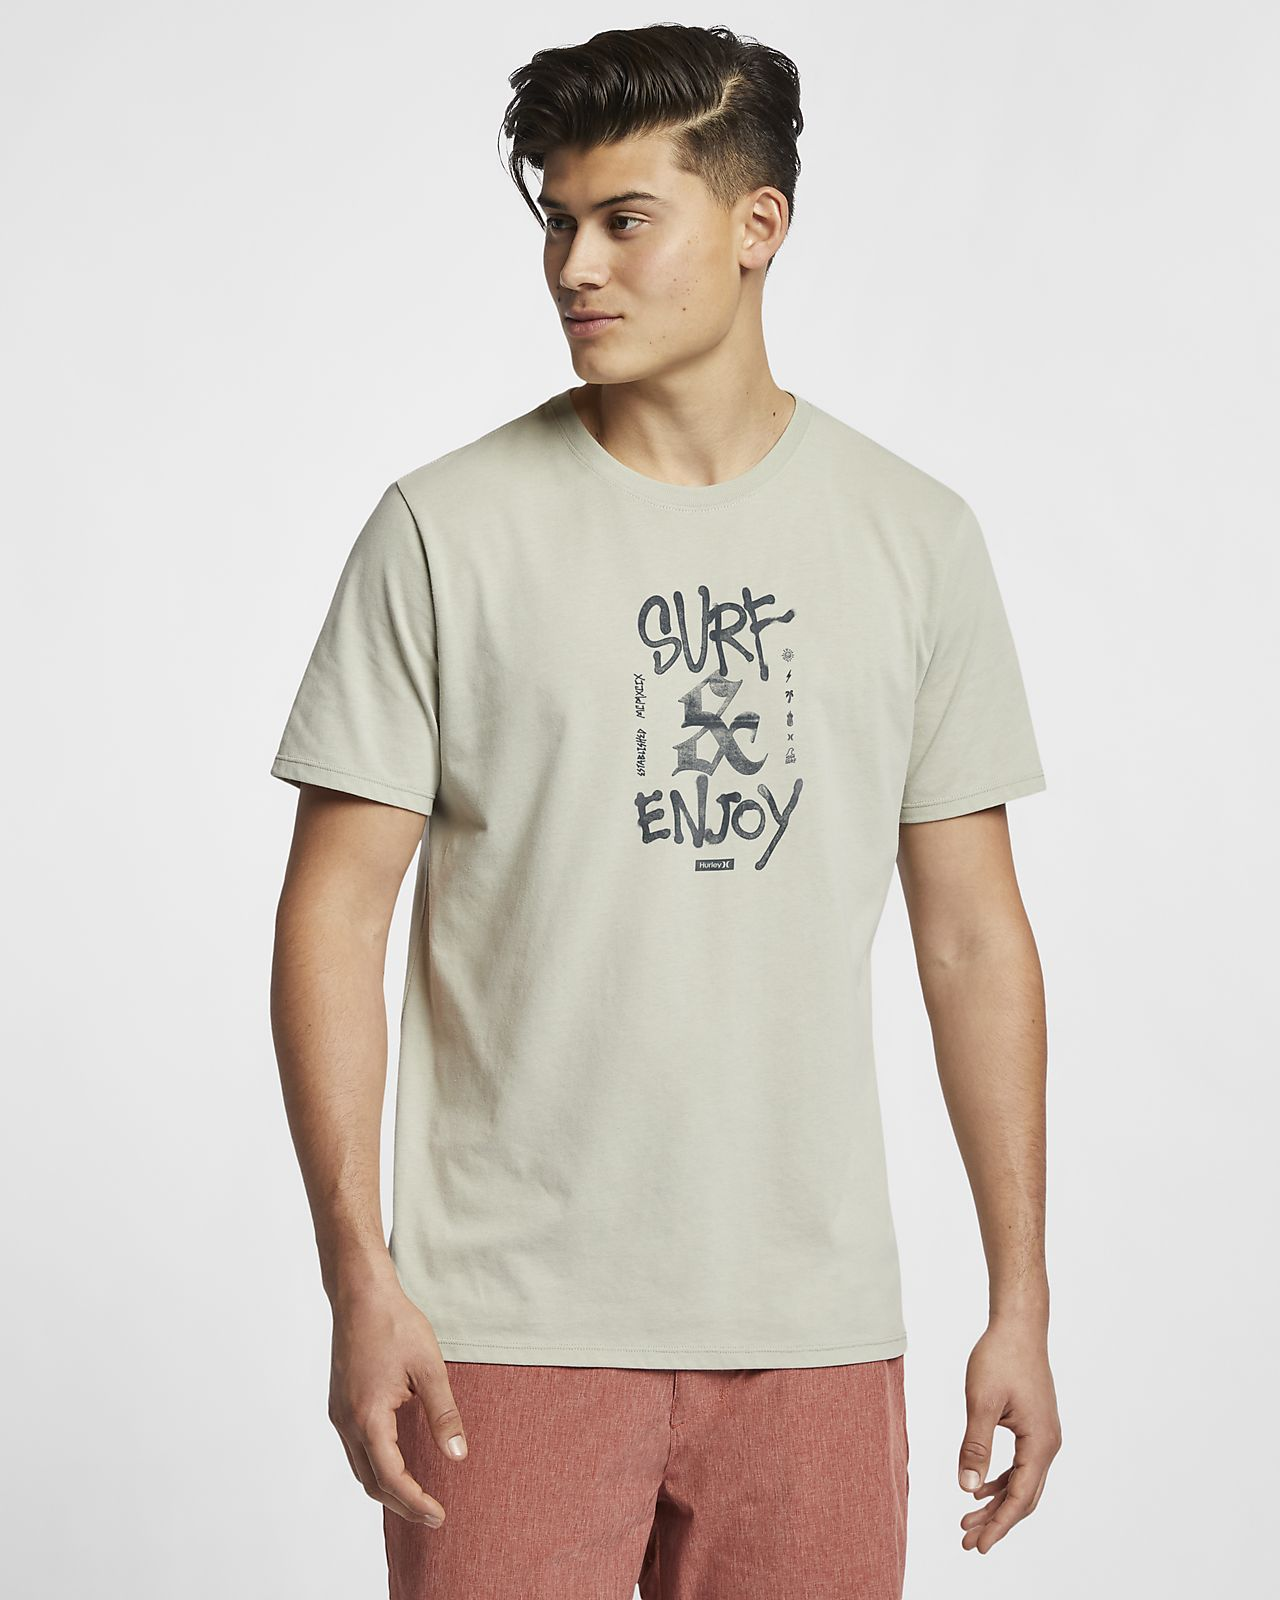 Hurley Dri-FIT Surf And Enjoy Camiseta - Hombre